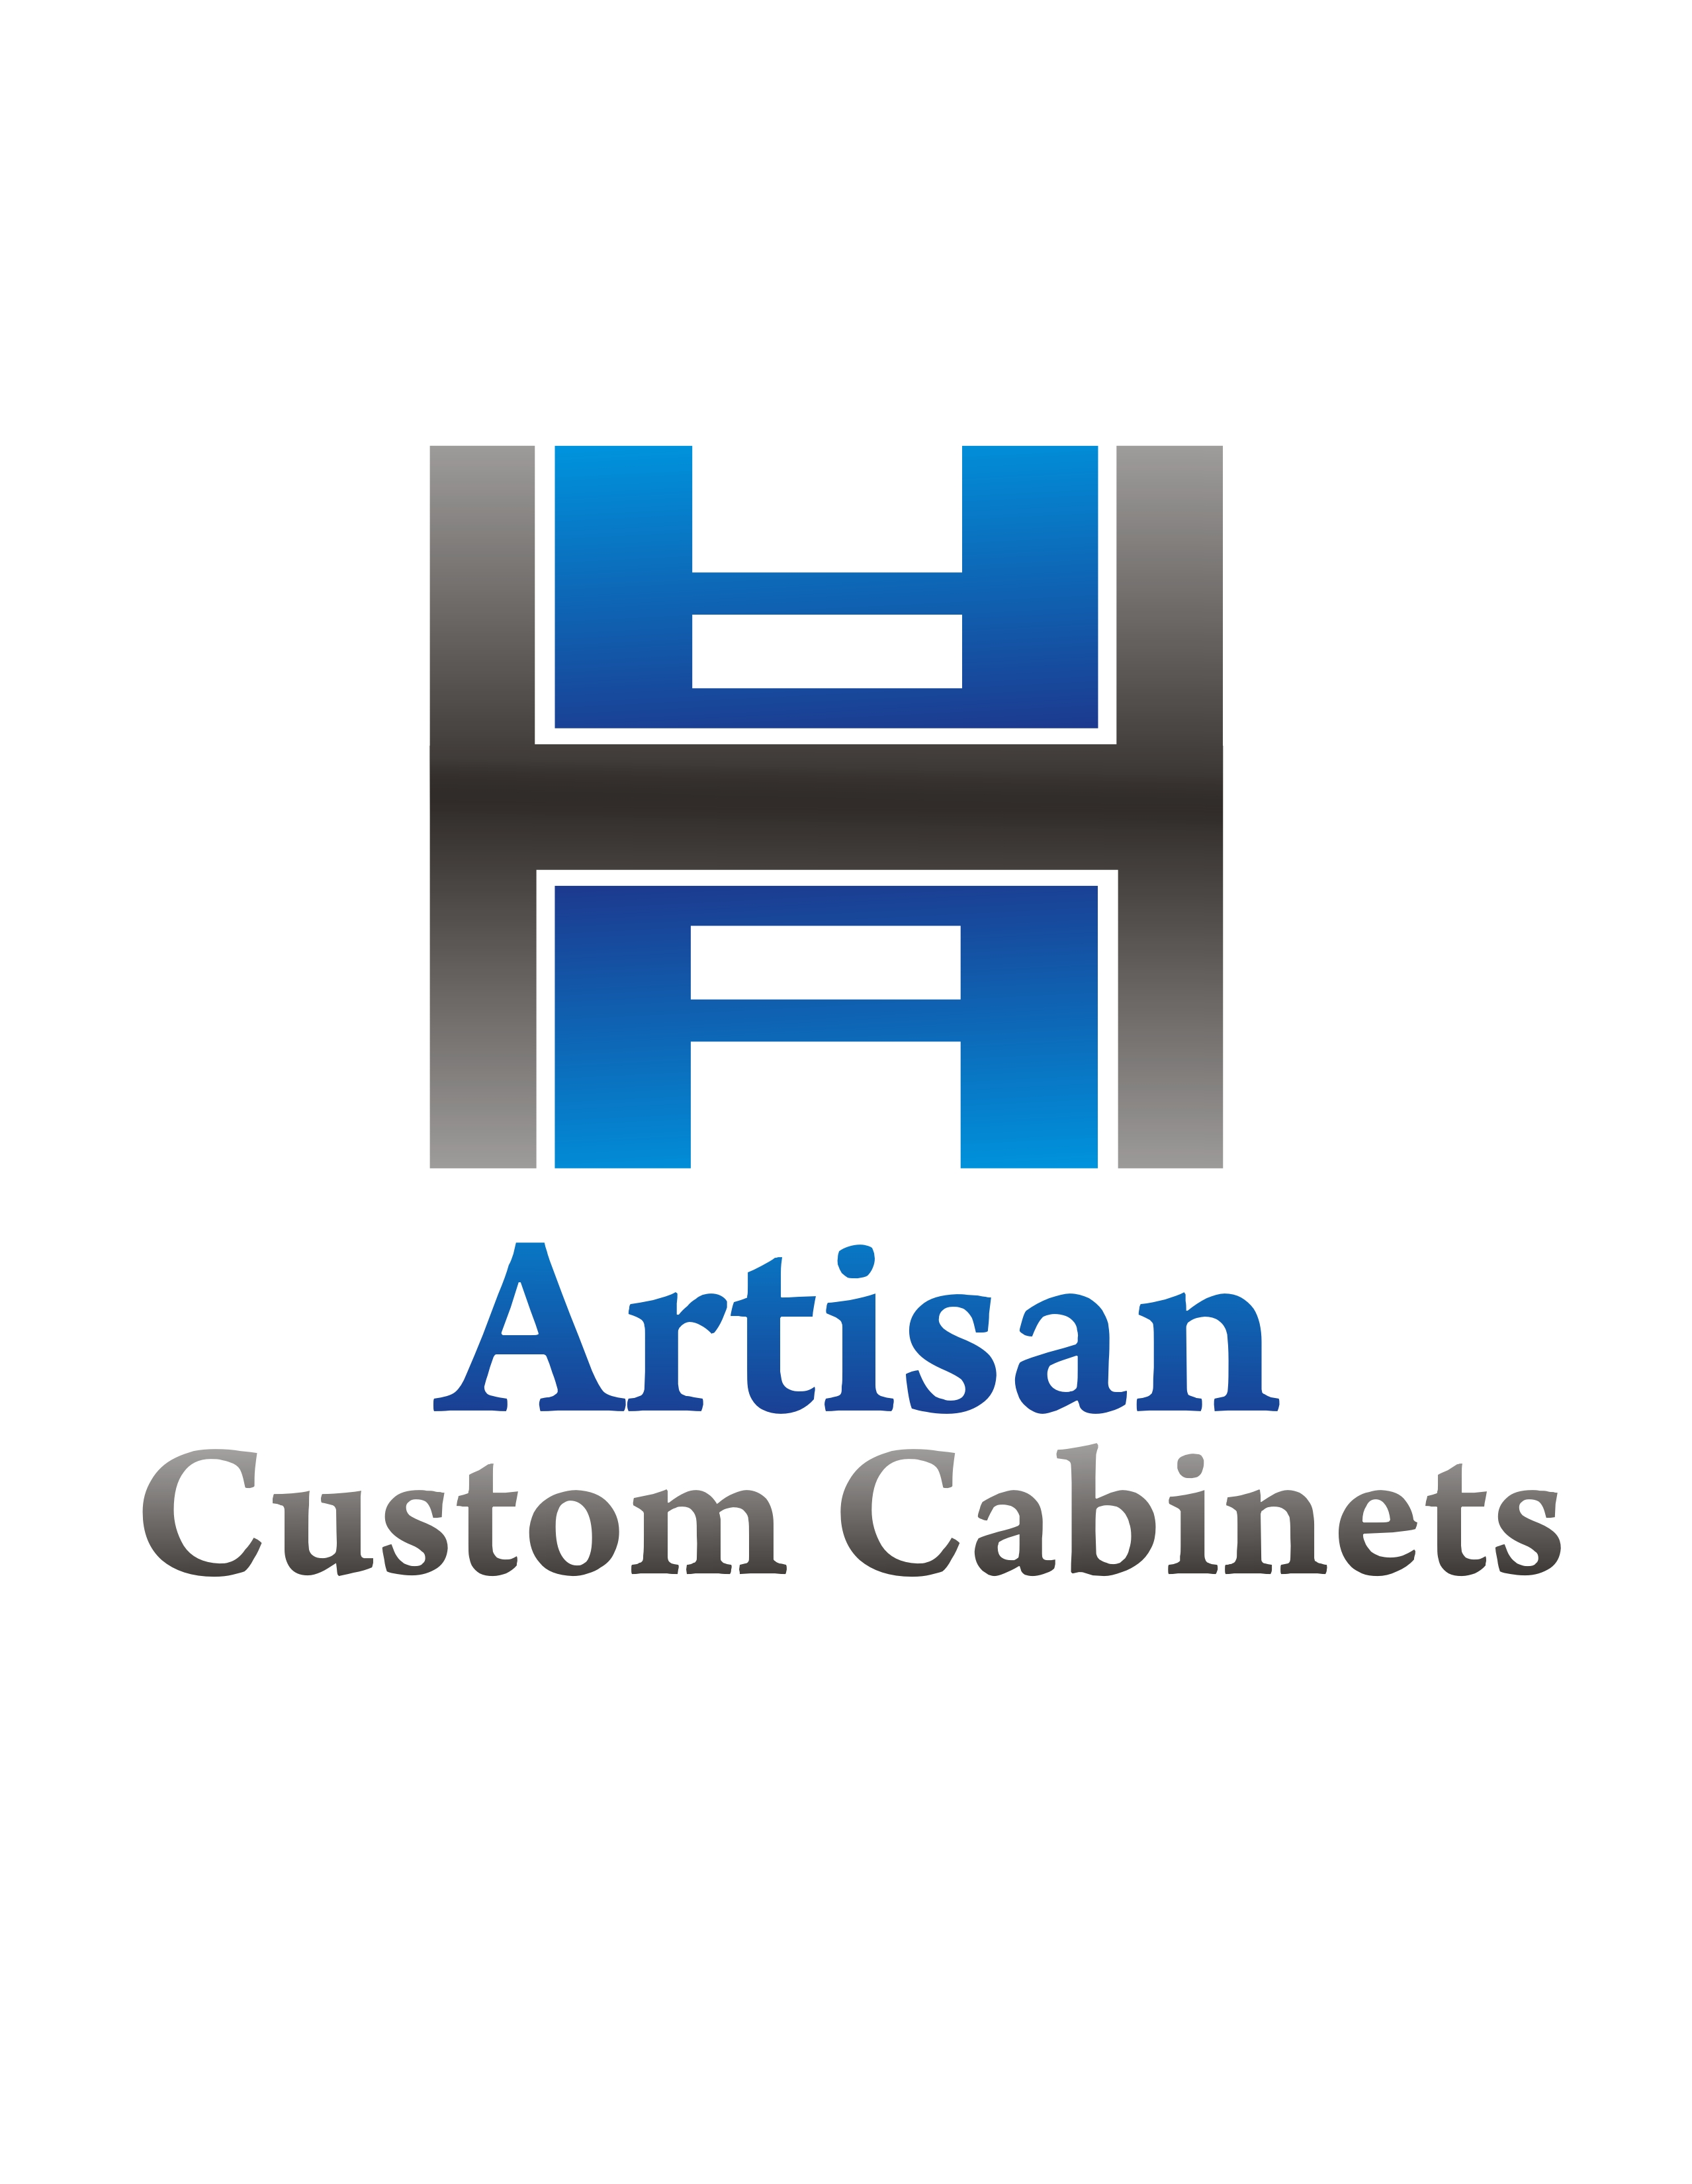 Logo Design by Private User - Entry No. 24 in the Logo Design Contest Creative Logo Design for Artisan Custom Cabinets.